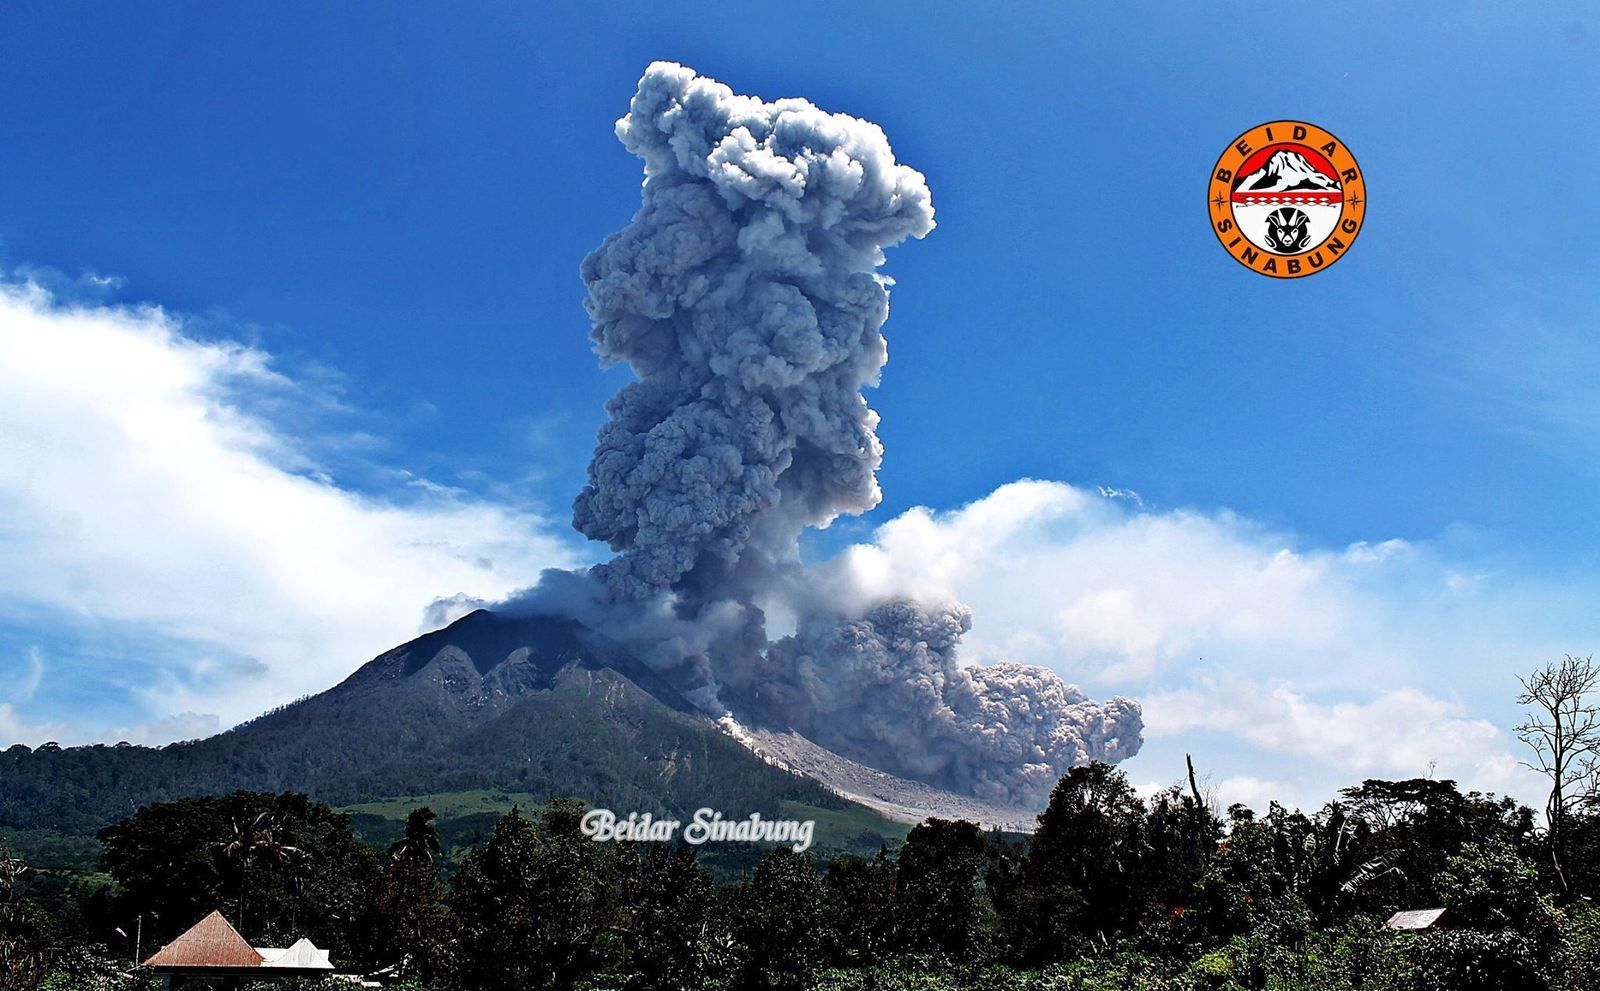 Sinabung 09/26/2015 - explosion plume and two pyroclastic flows developing - photo Firdaus Surbakti / Beidar Sinabung